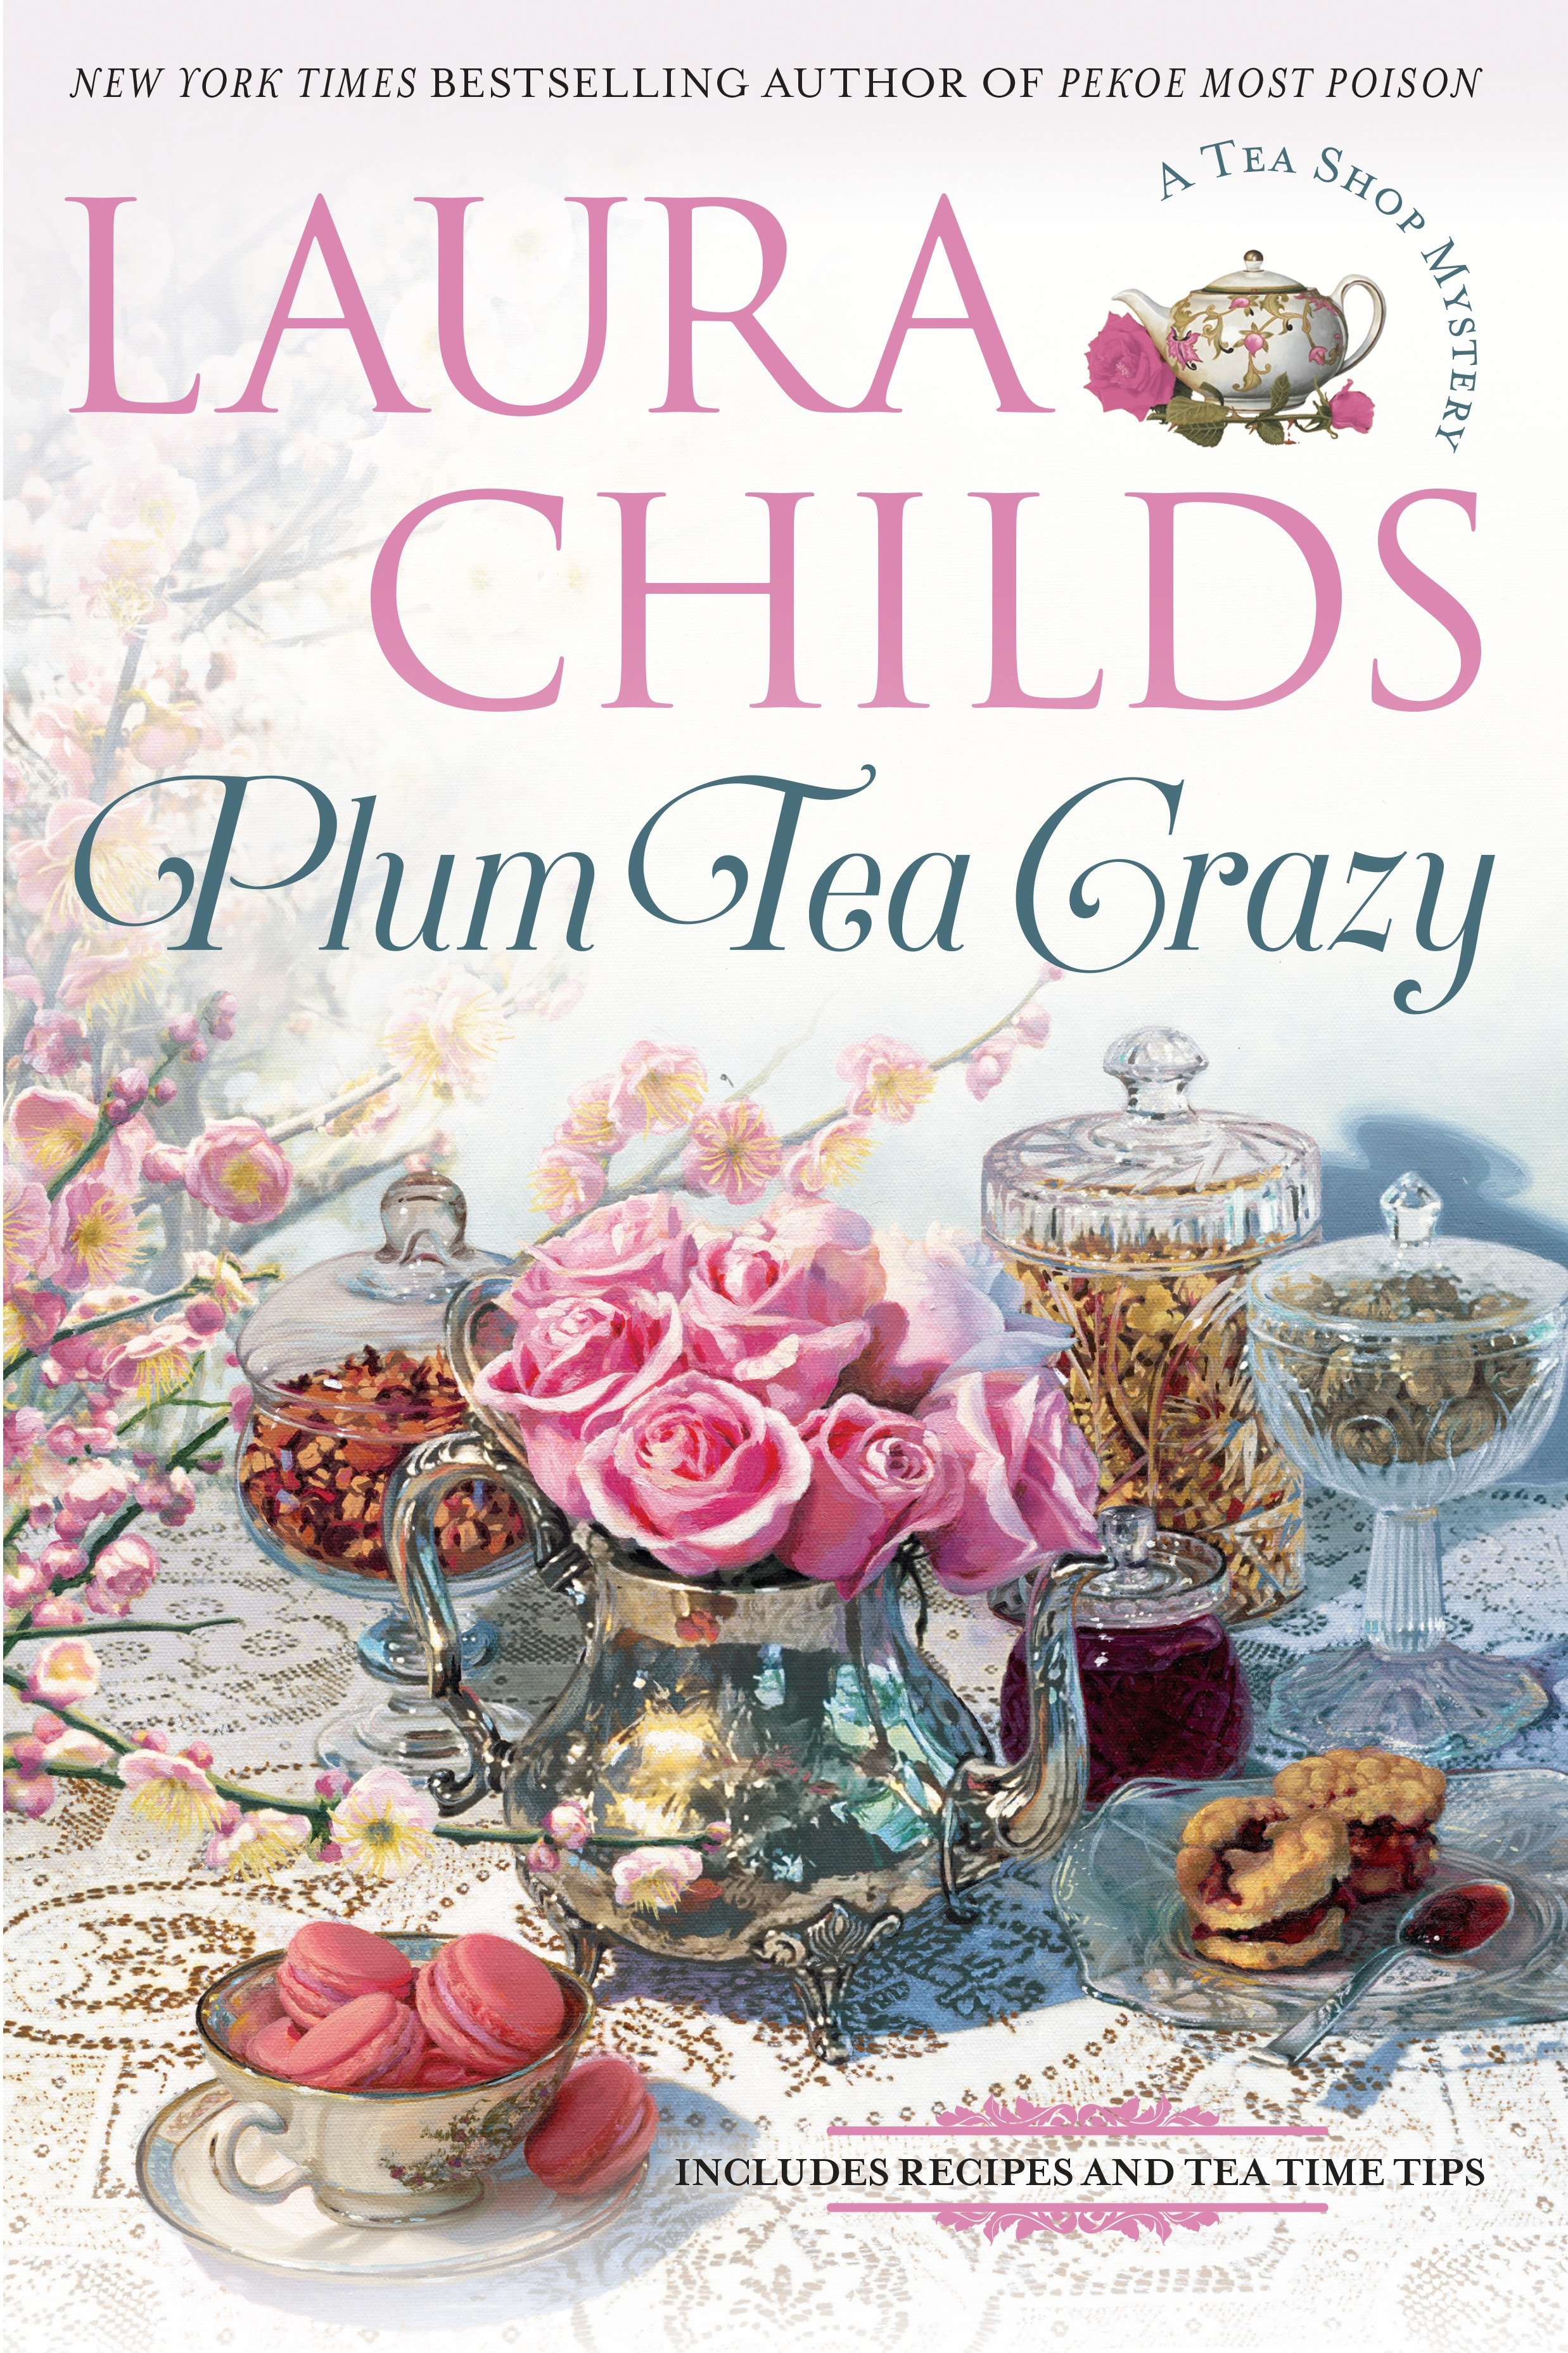 Plum tea crazy cover image